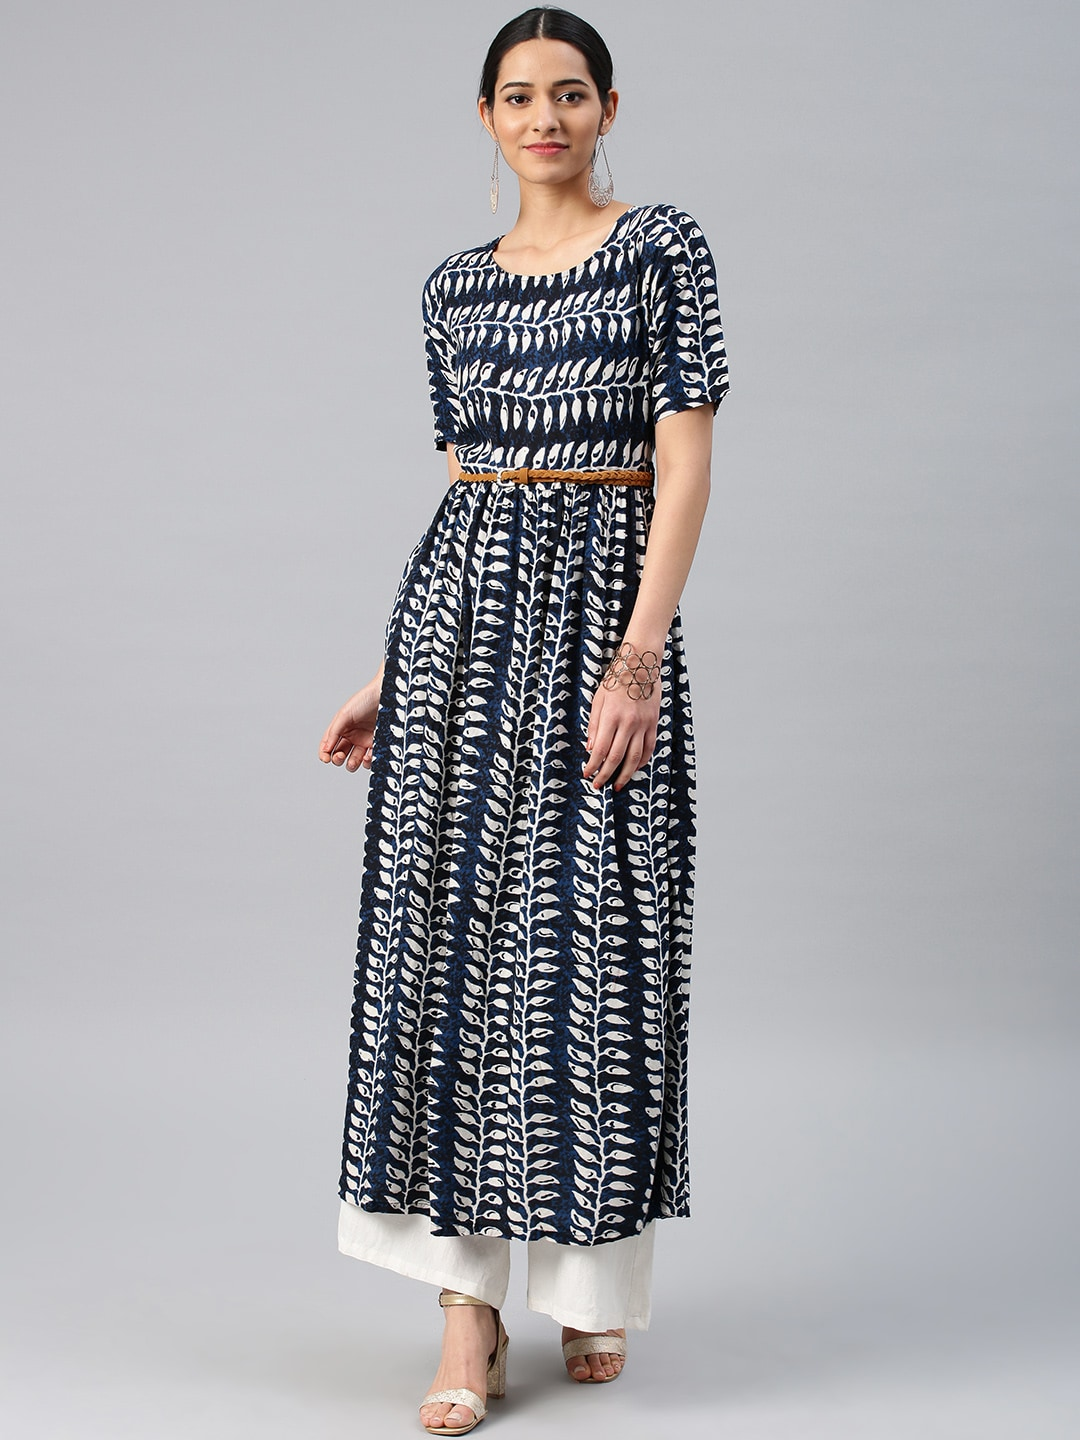 d5d940252f6 Long Dresses - Buy Maxi Dresses for Women Online in India - Upto 70% OFF